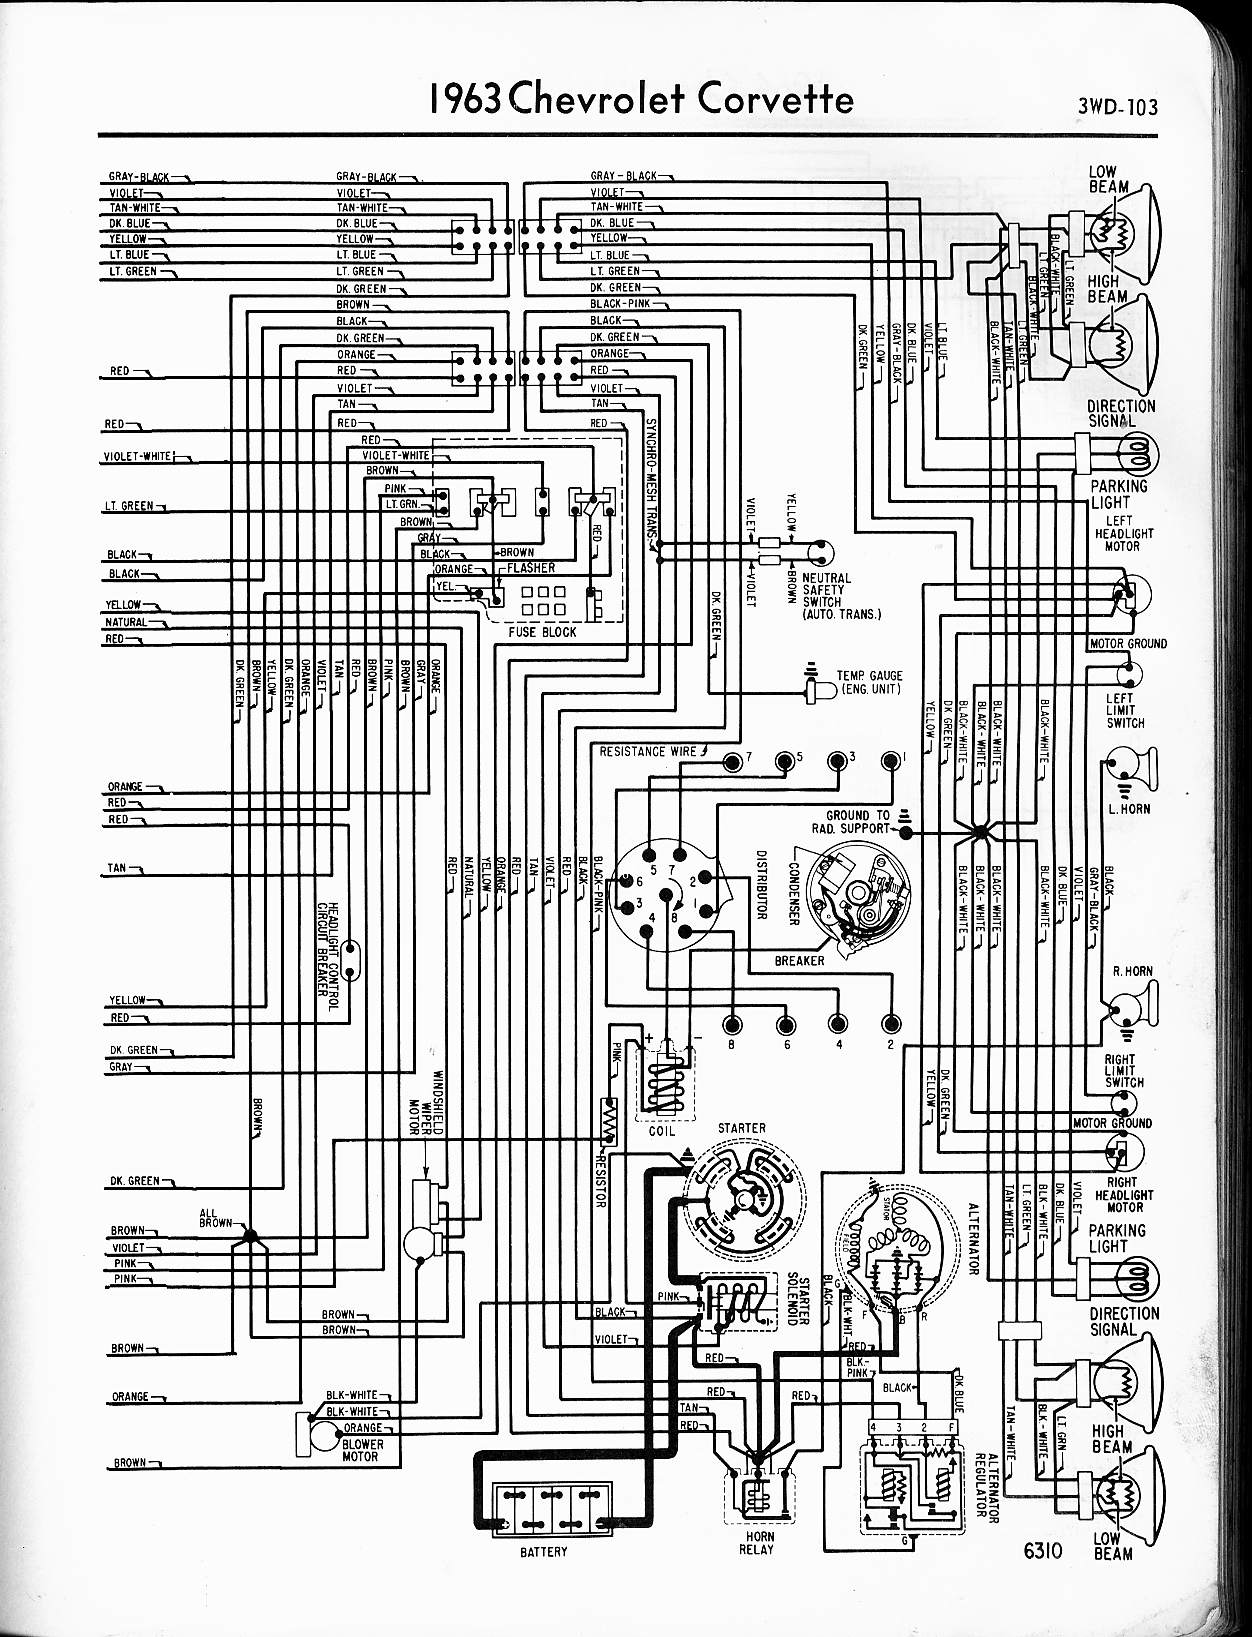 68 corvair wiring diagram 1963 corvair wiring diagram - wiring diagrams schematics